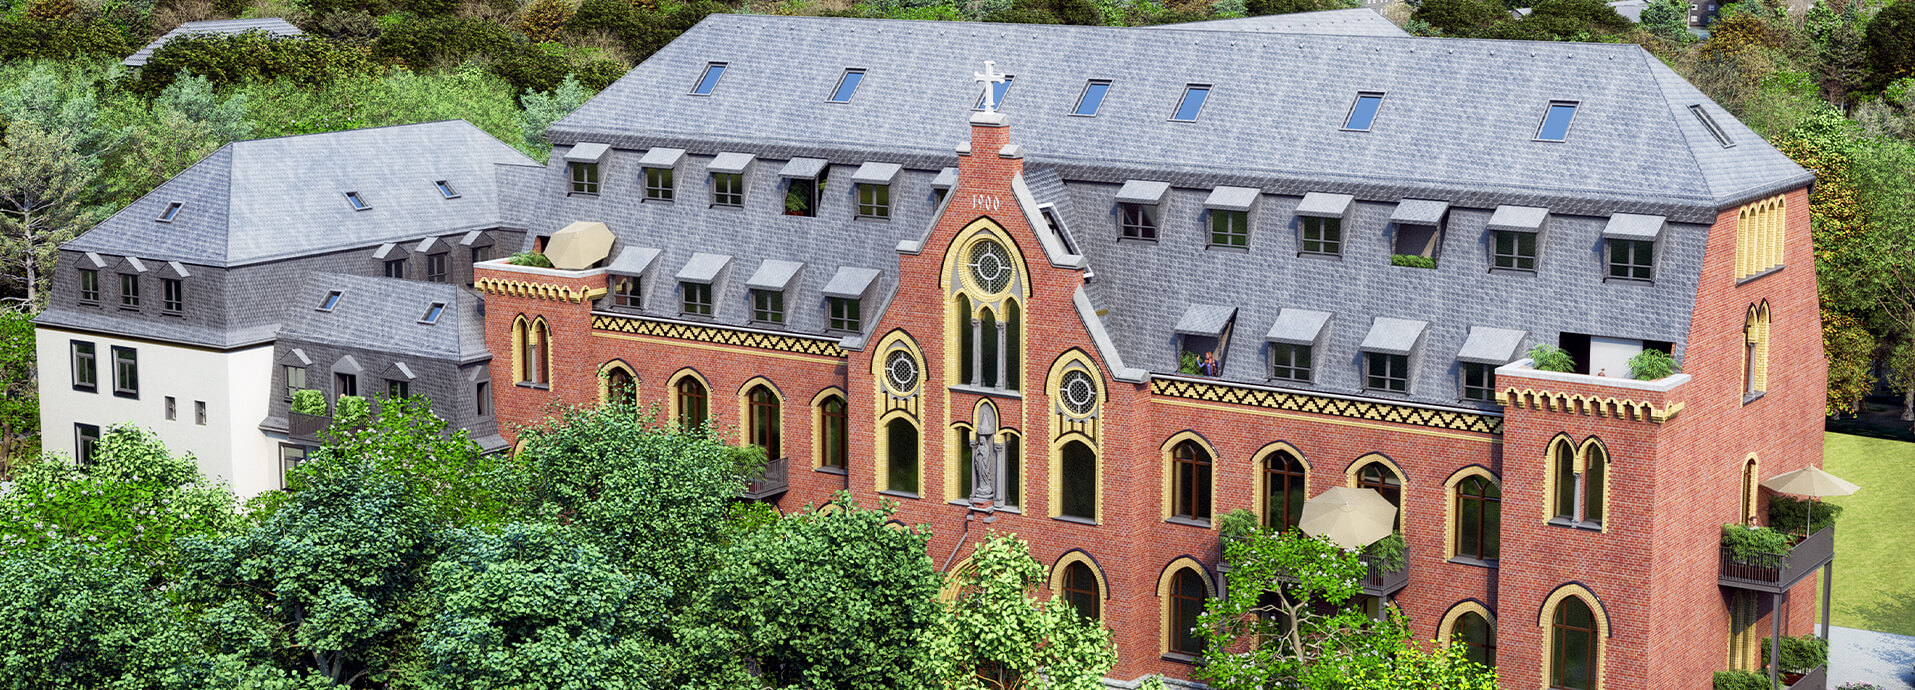 pallotti-kloster-in-limburg-header